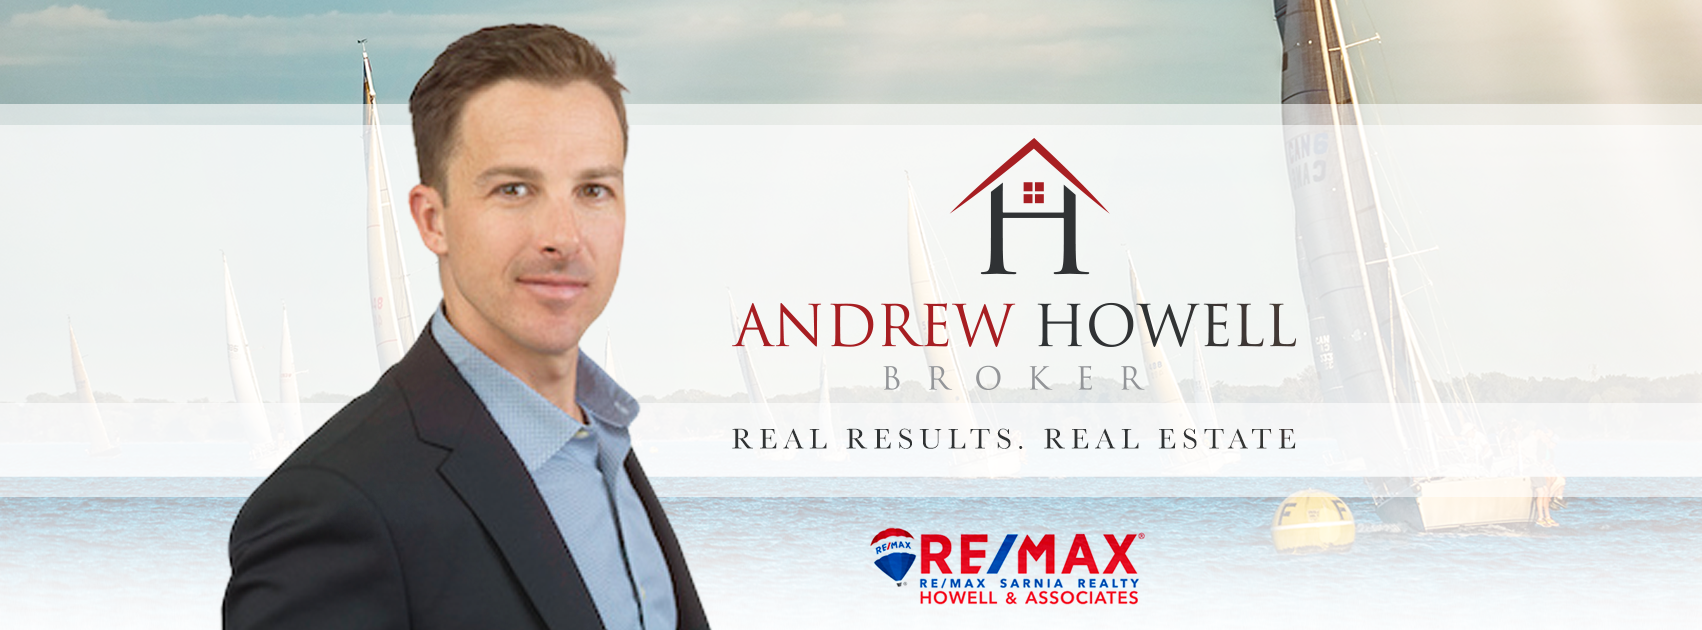 Sarnia Real Estate Agent - Andrew Howell reviews | Real Estate Agents at 1319 Exmouth Street - Sarnia ON